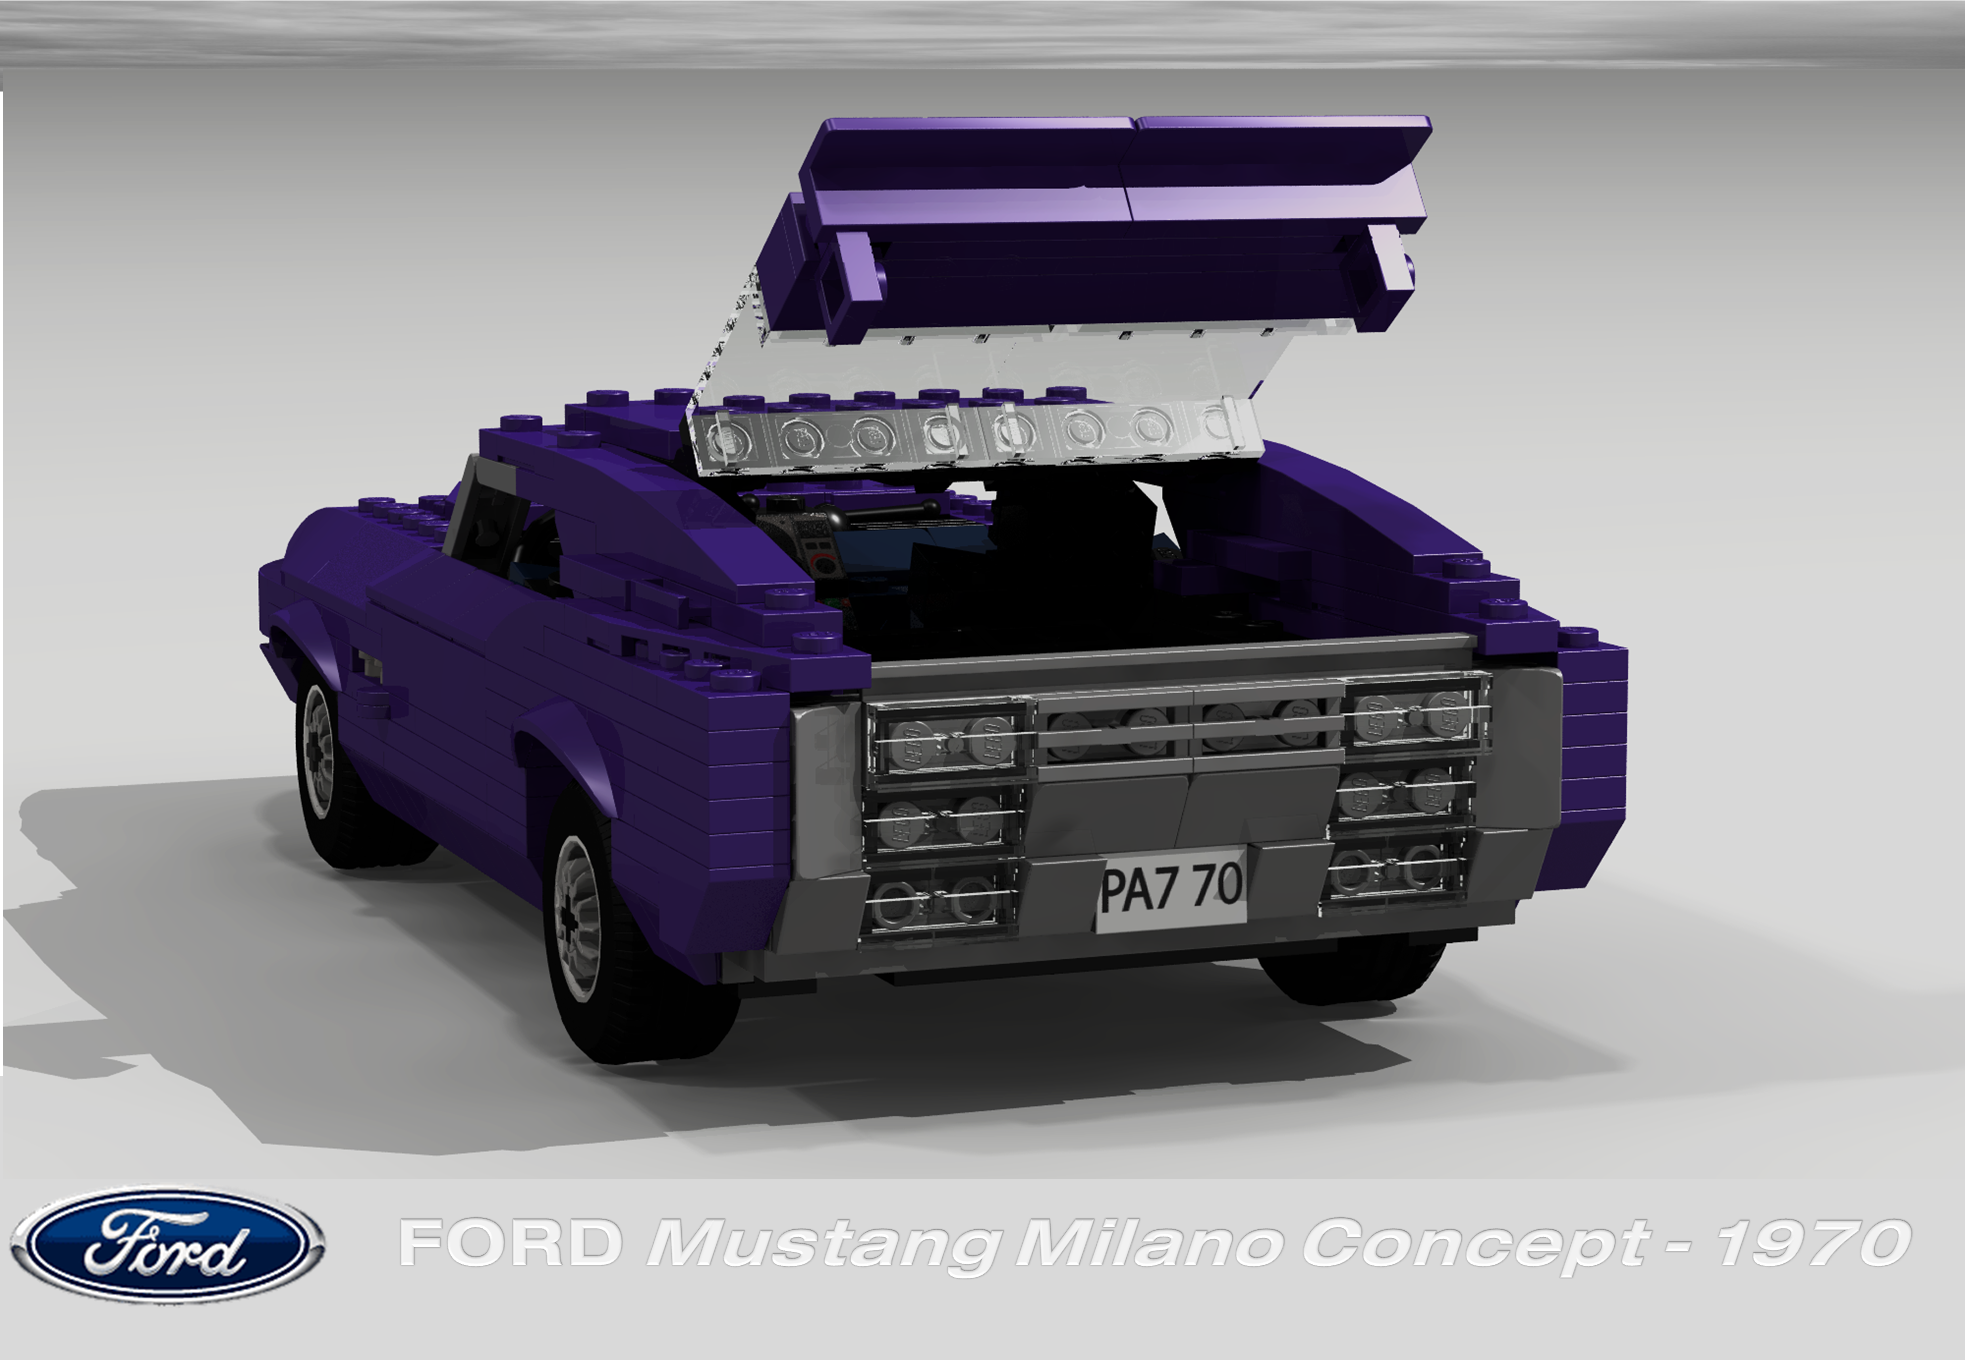 ford_mustang_milano_concept_1970_10.png